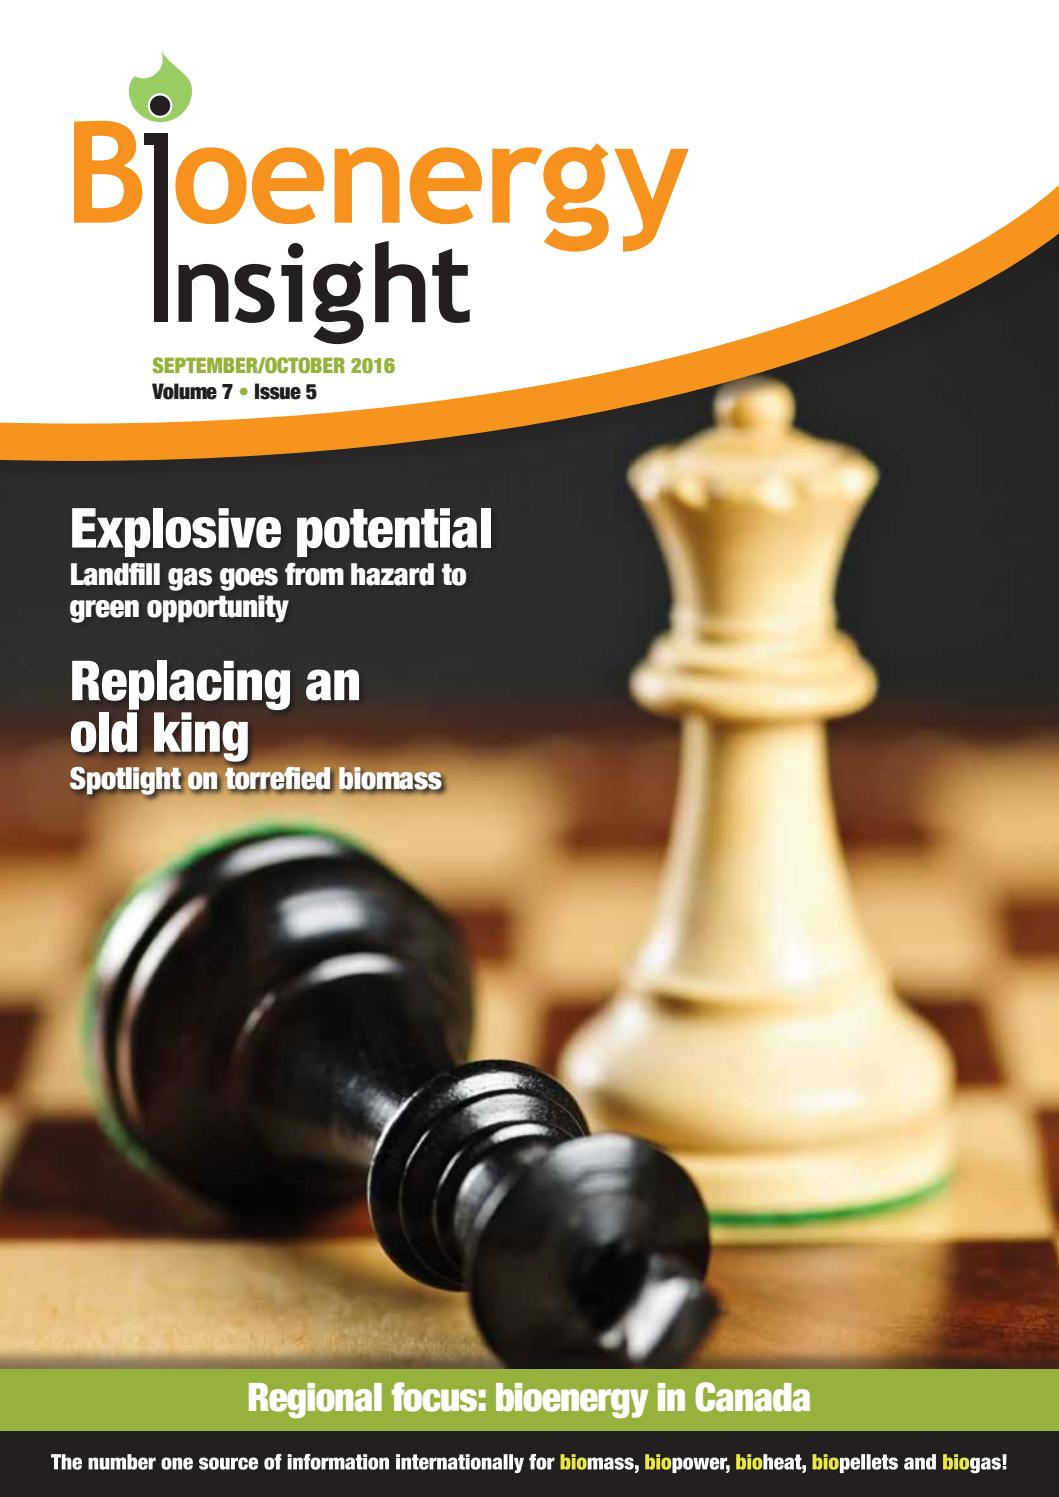 Bioenergy Insight September/October 2016 by Woodcote Media